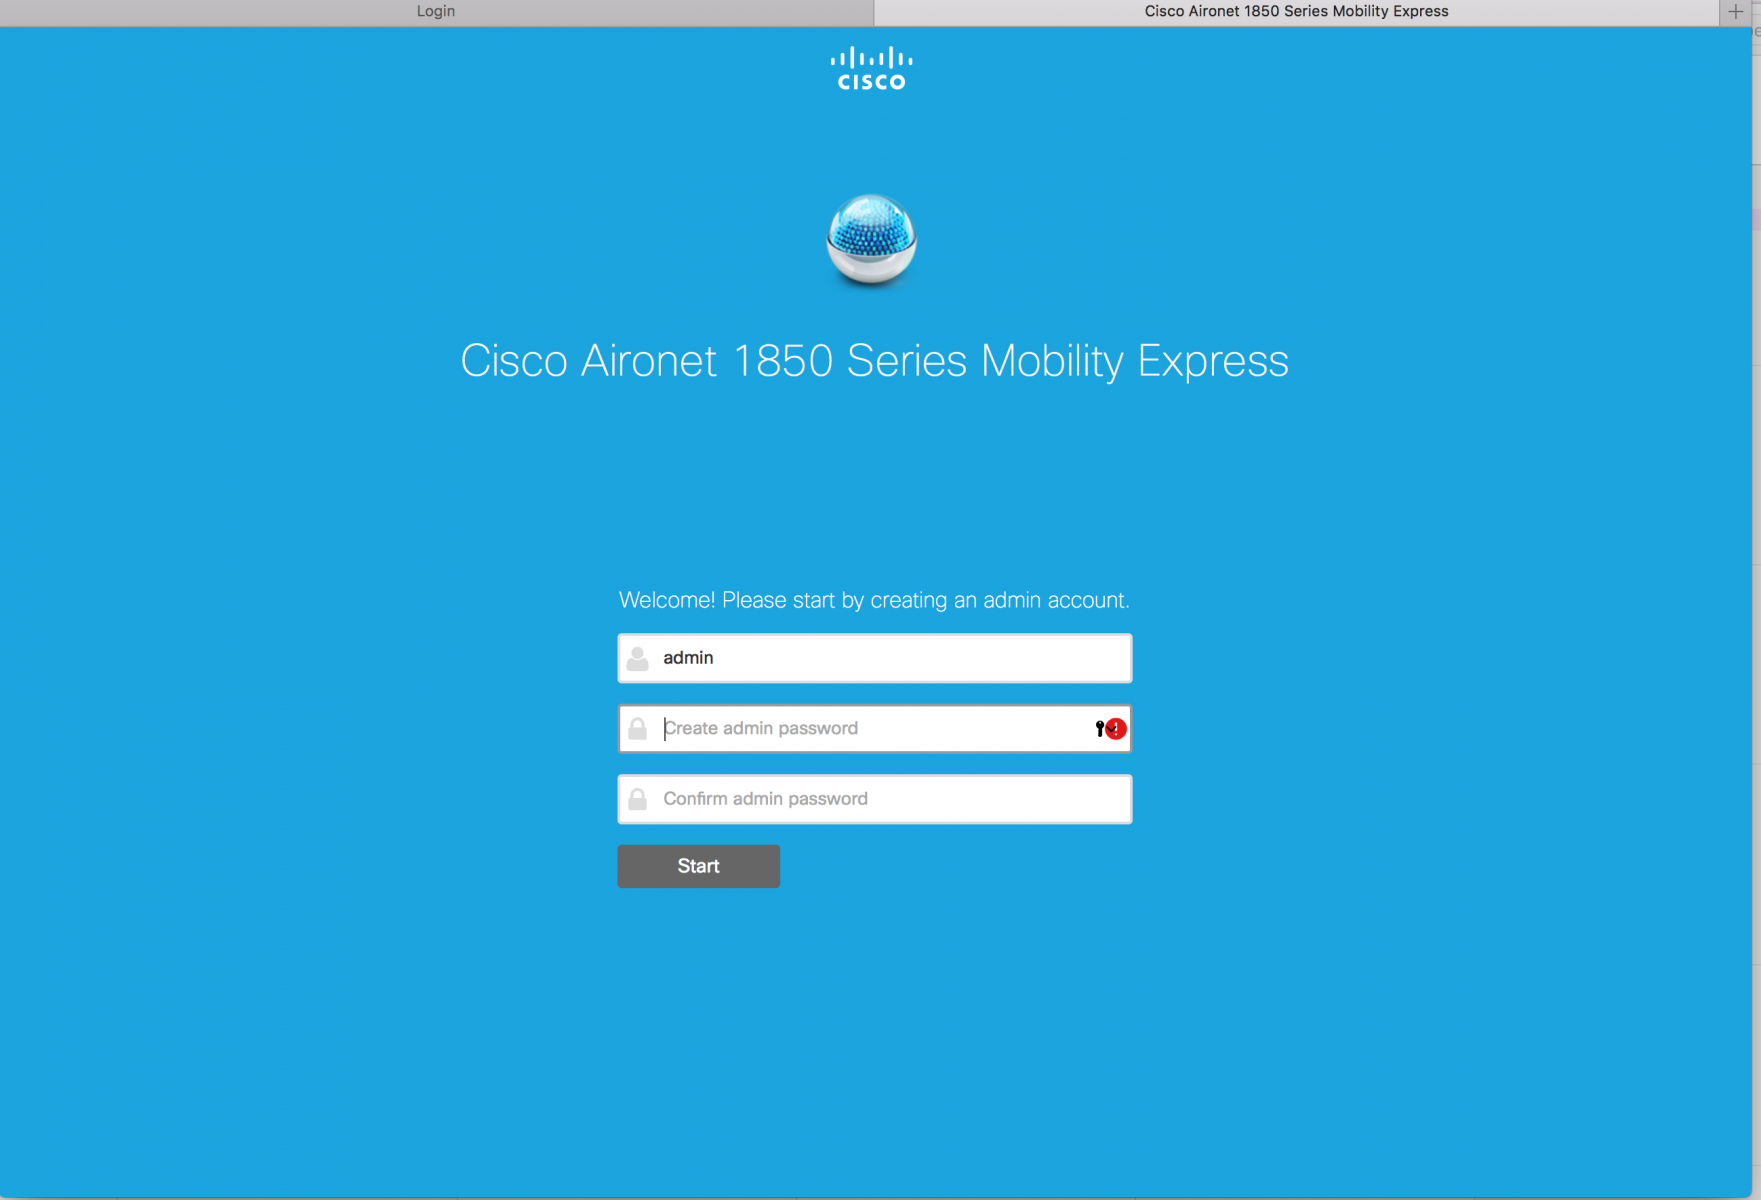 Deploying a Cisco Mobility Express network - Pieter-Jan Nefkens